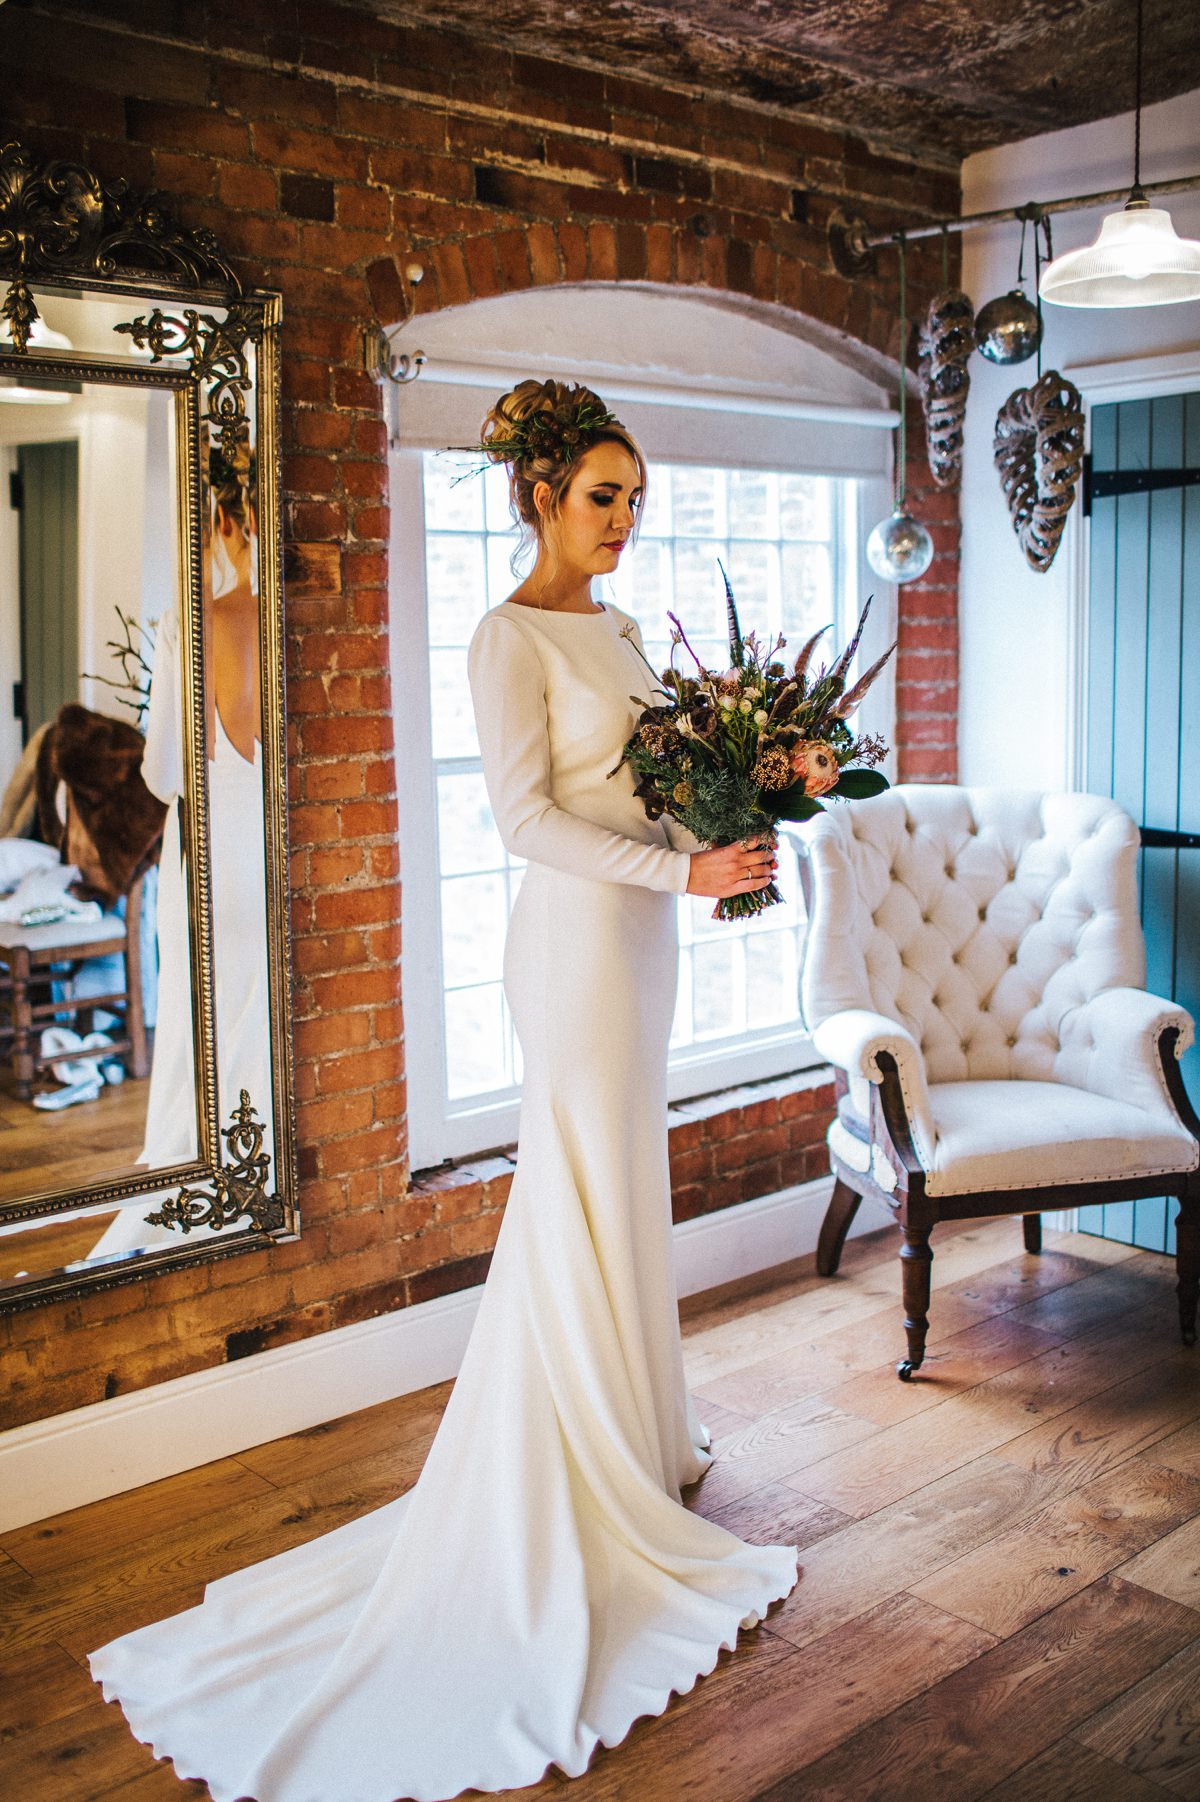 The Bride in her long sleeved dress